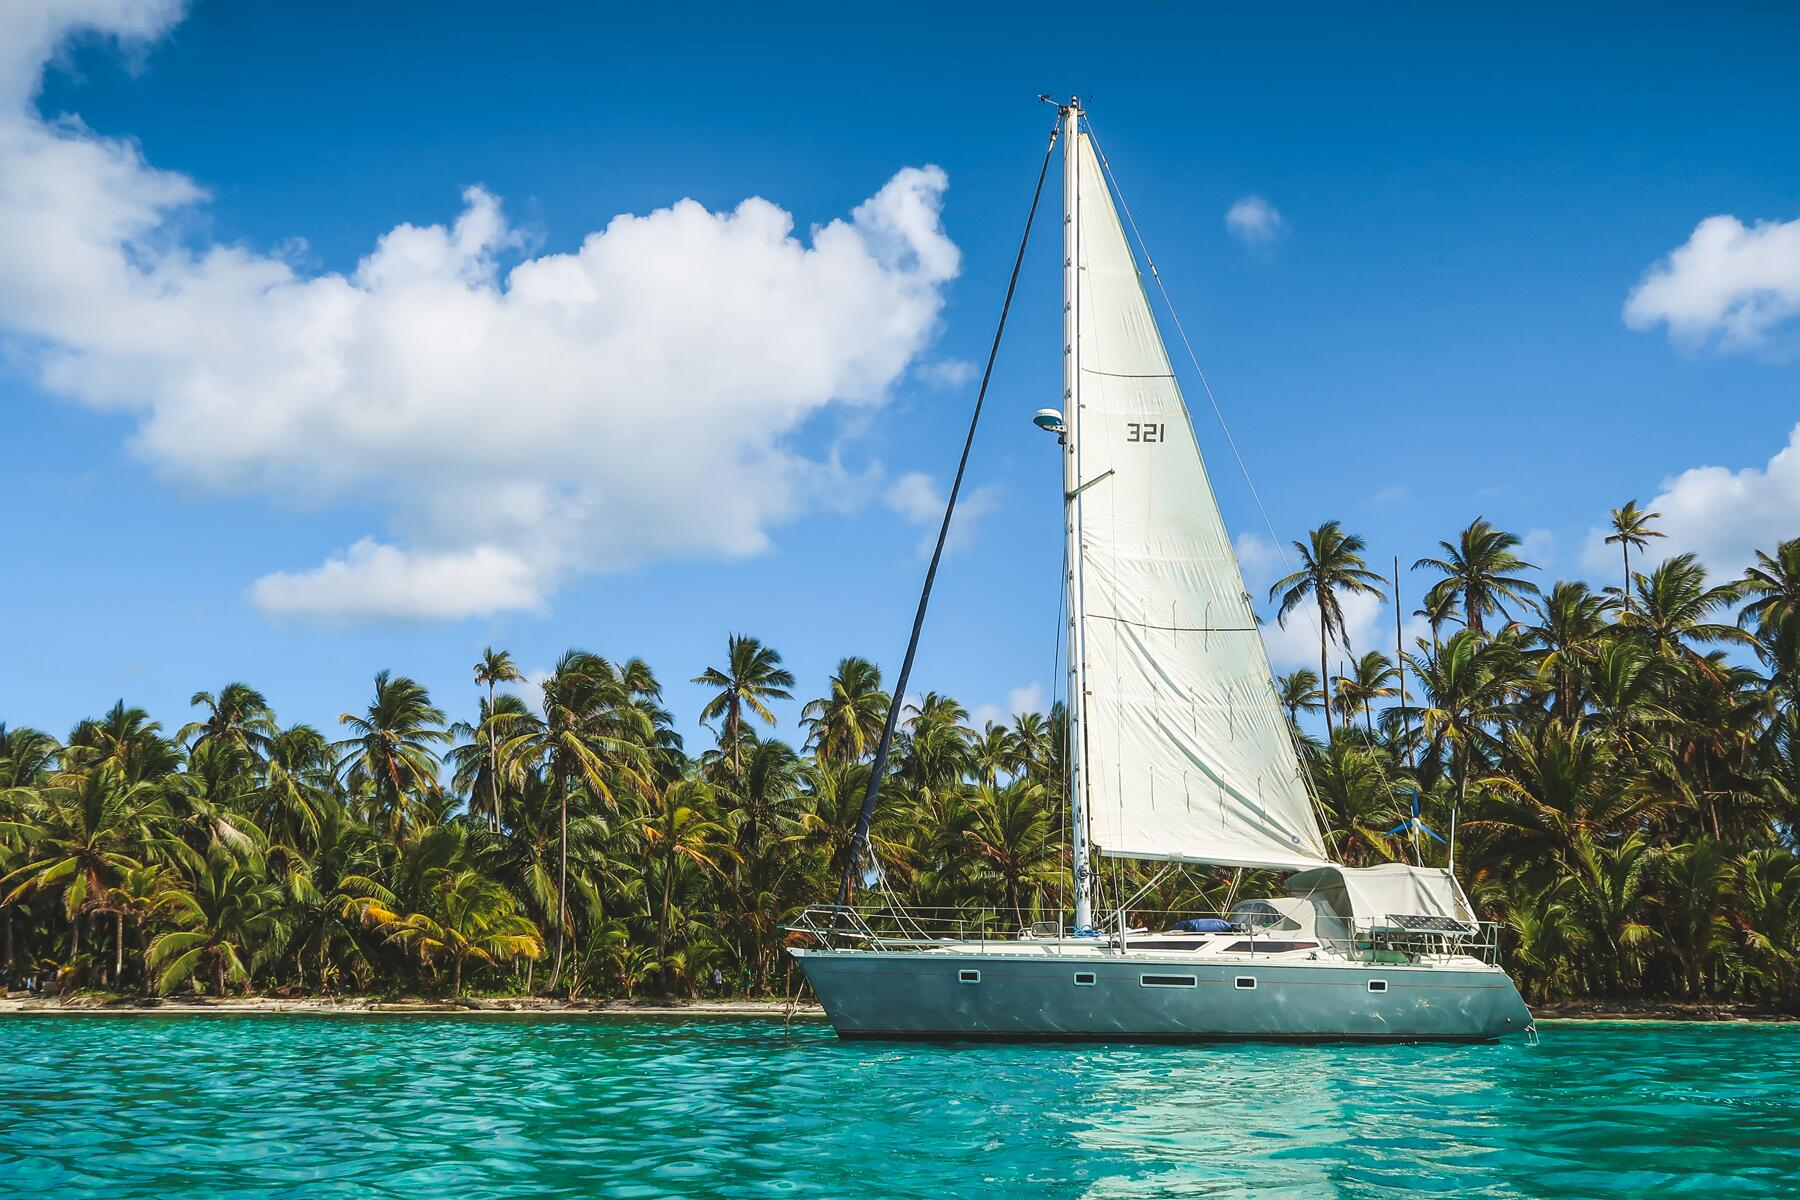 What It S Like To Be Quarantined On A Yacht In The Caribbean City mountains dock sail boat yacht